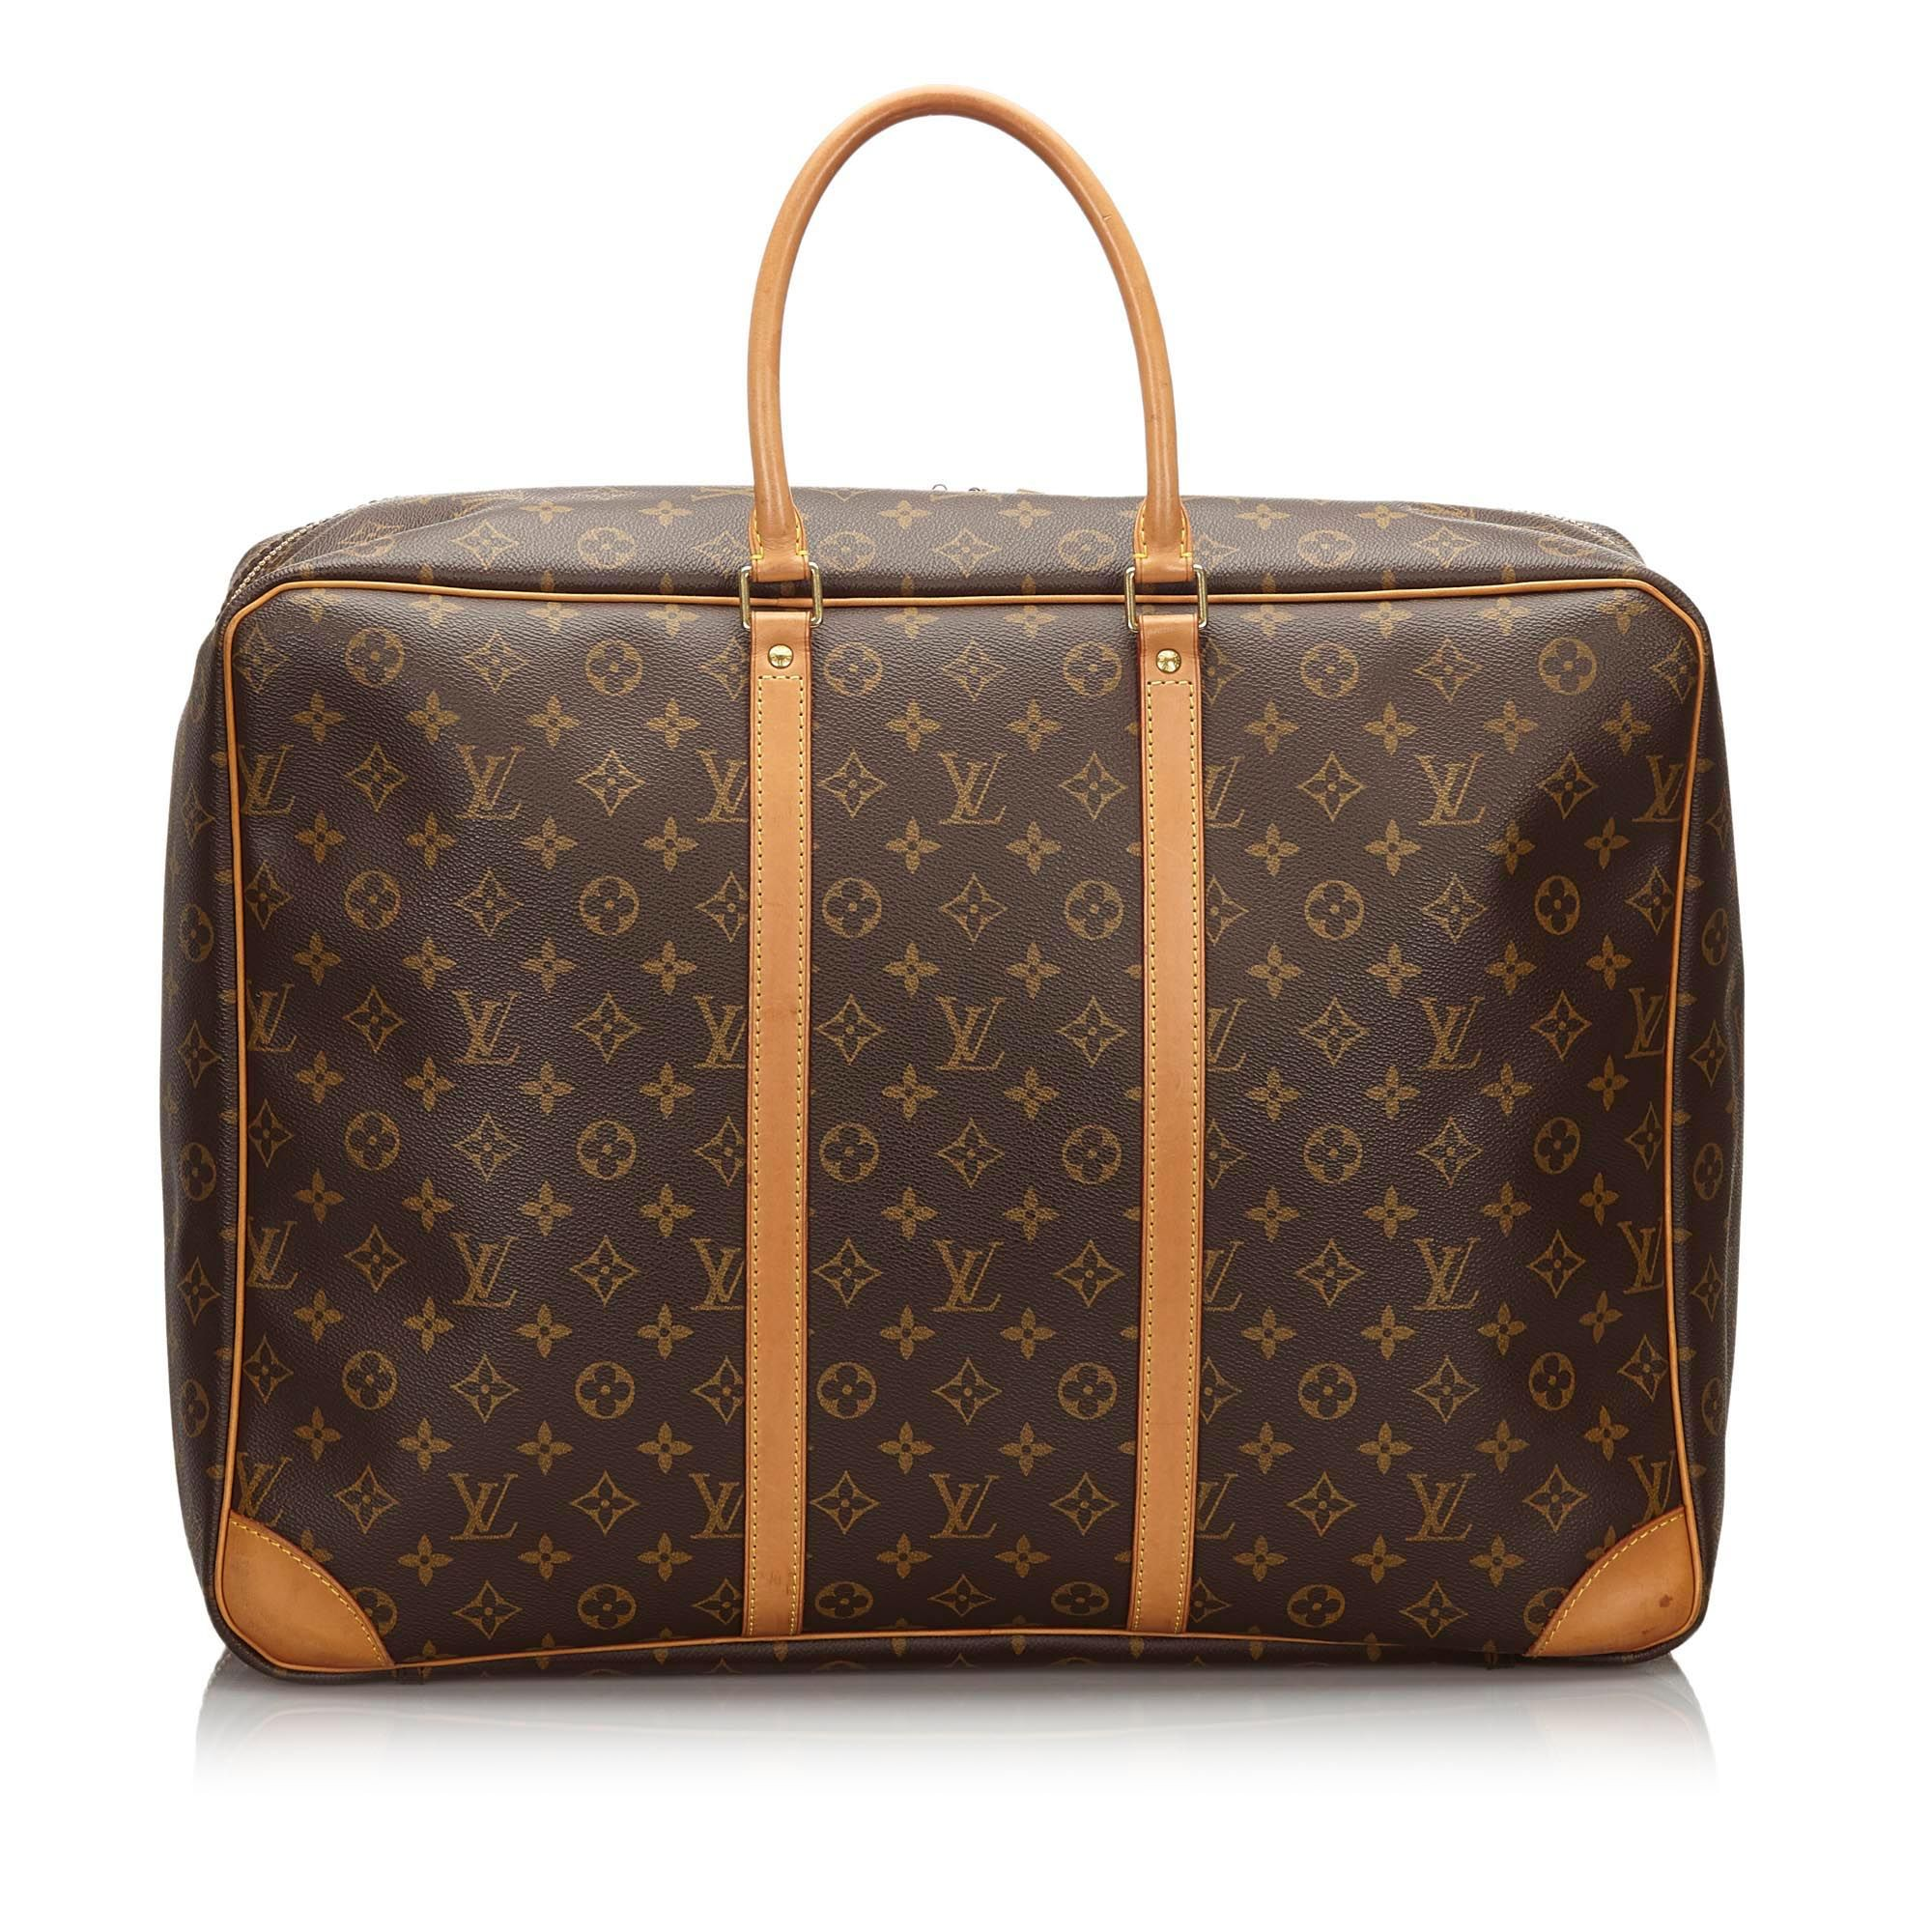 Vintage Louis Vuitton Monogram Sirius 50 Brown